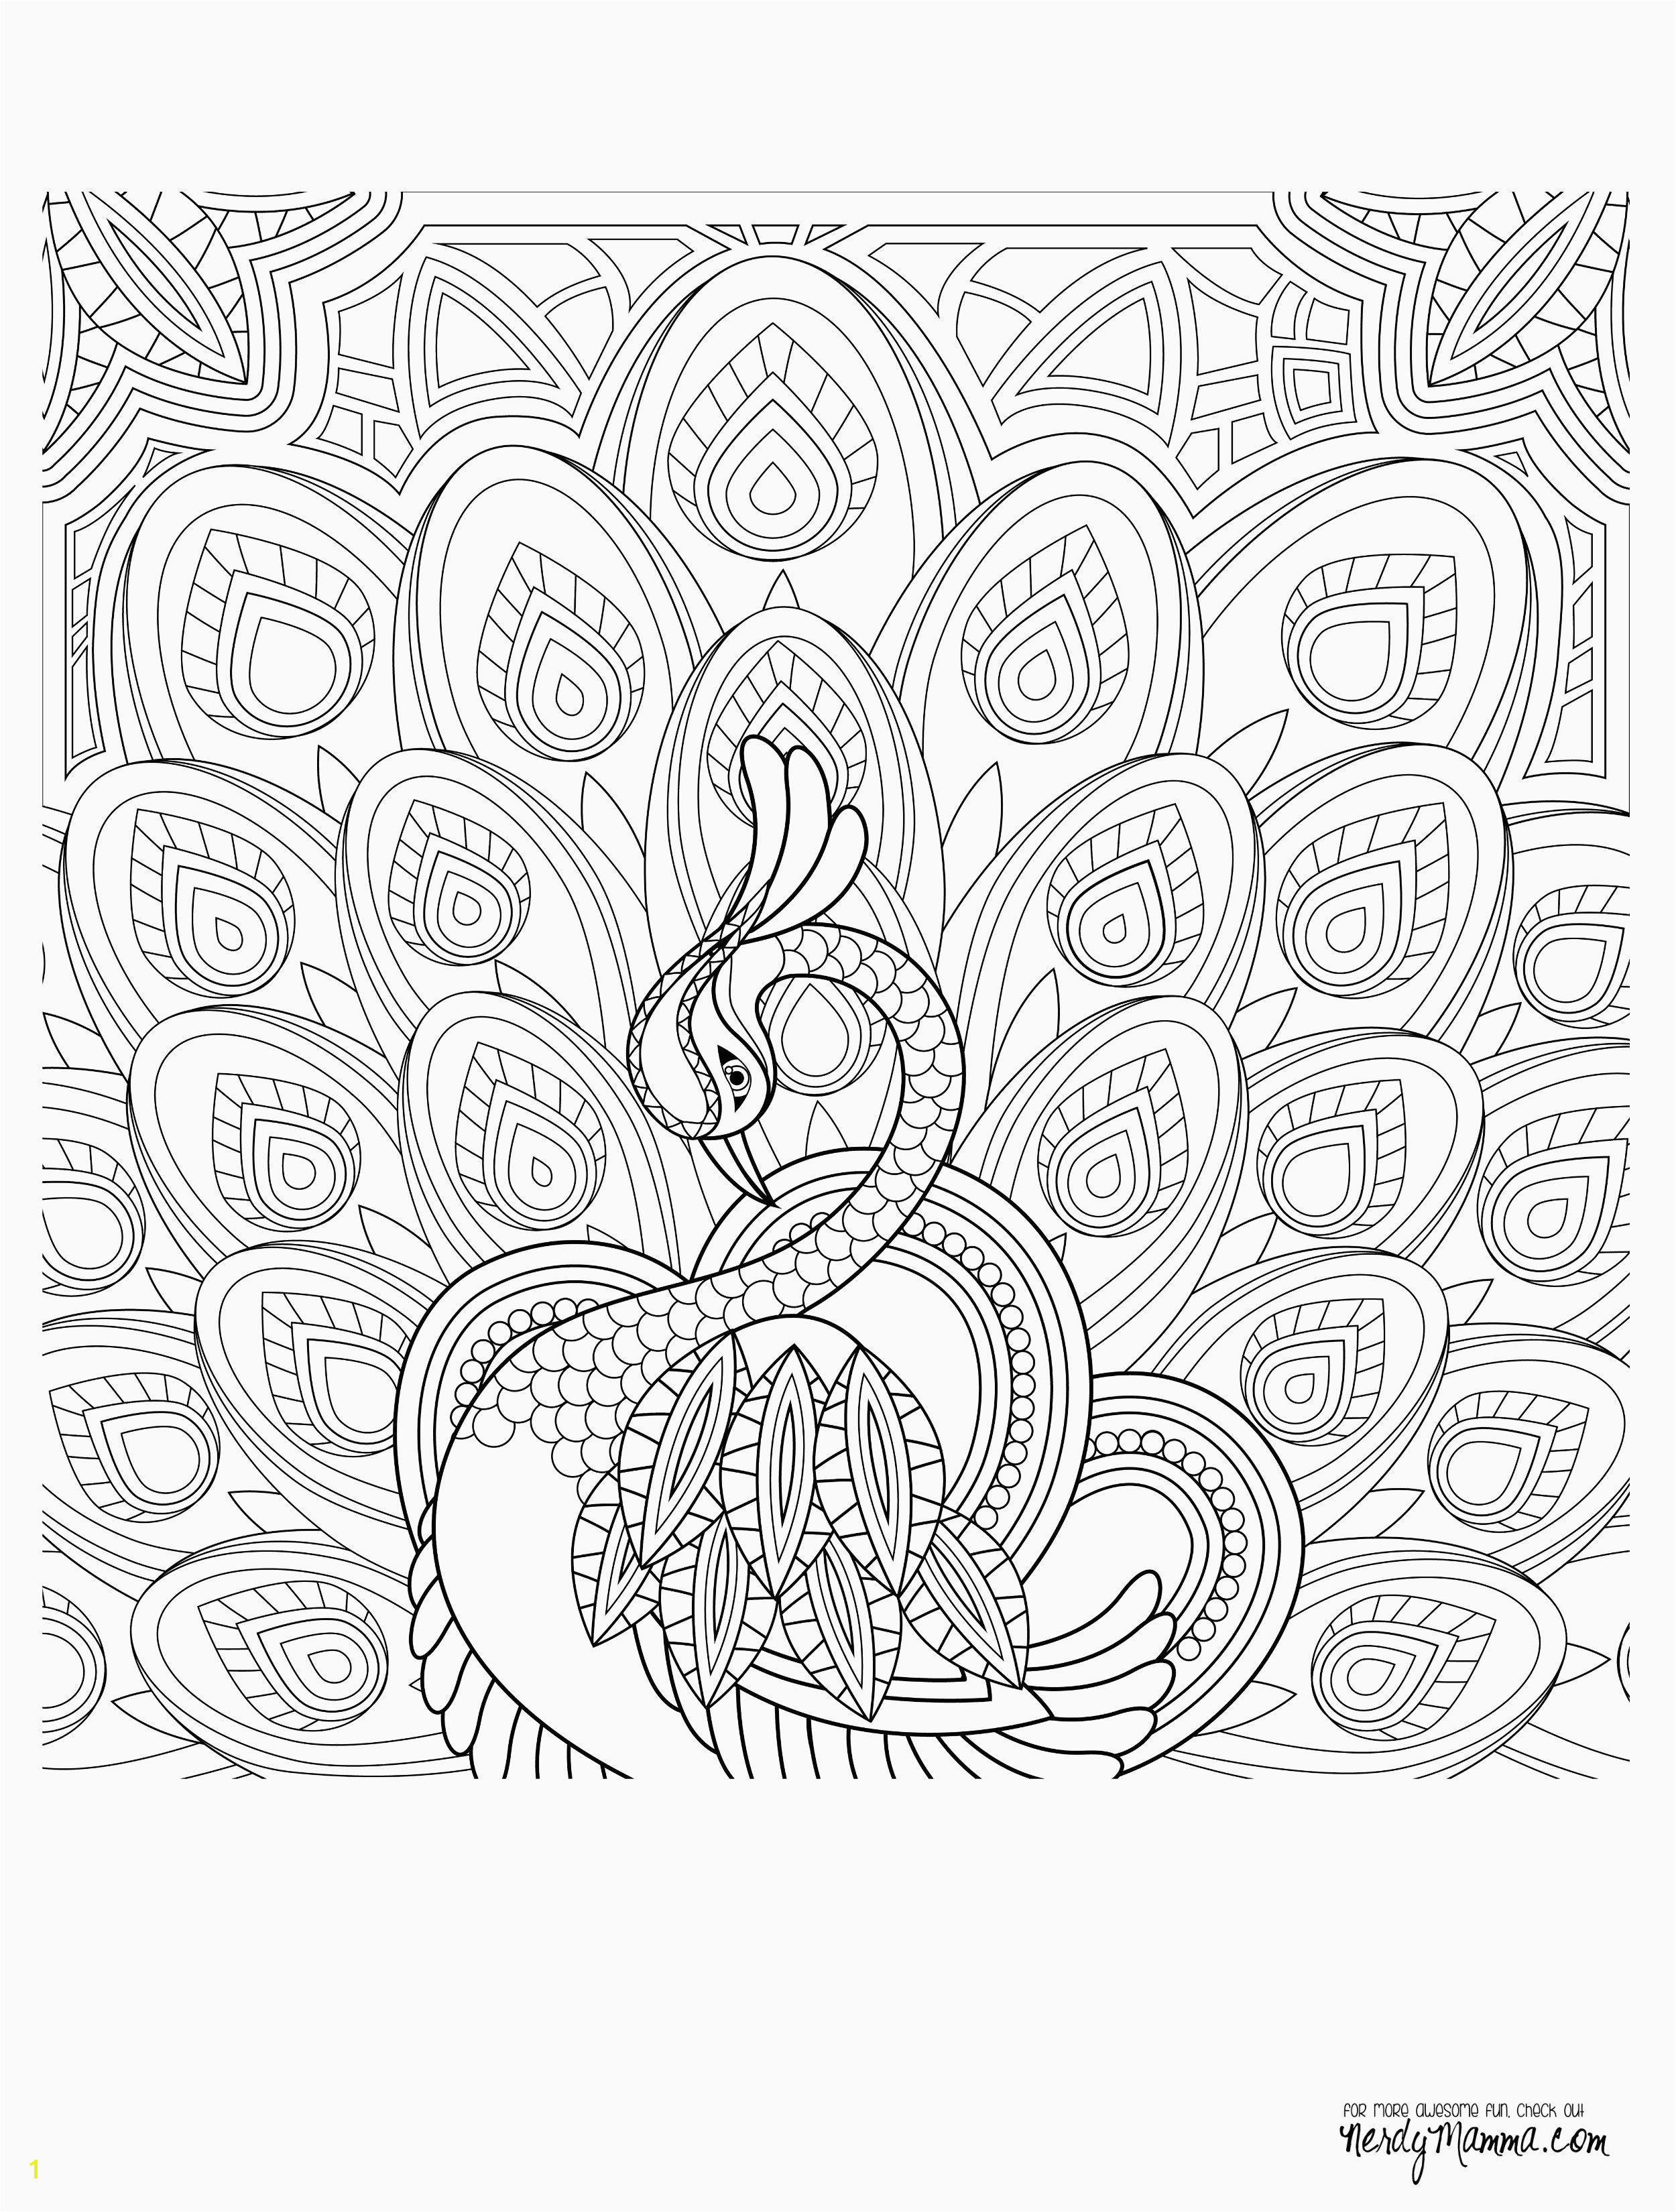 Free Printable Coloring Pages For Adults Best Awesome Coloring Page For Adult Od Kids Simple Floral Heart With